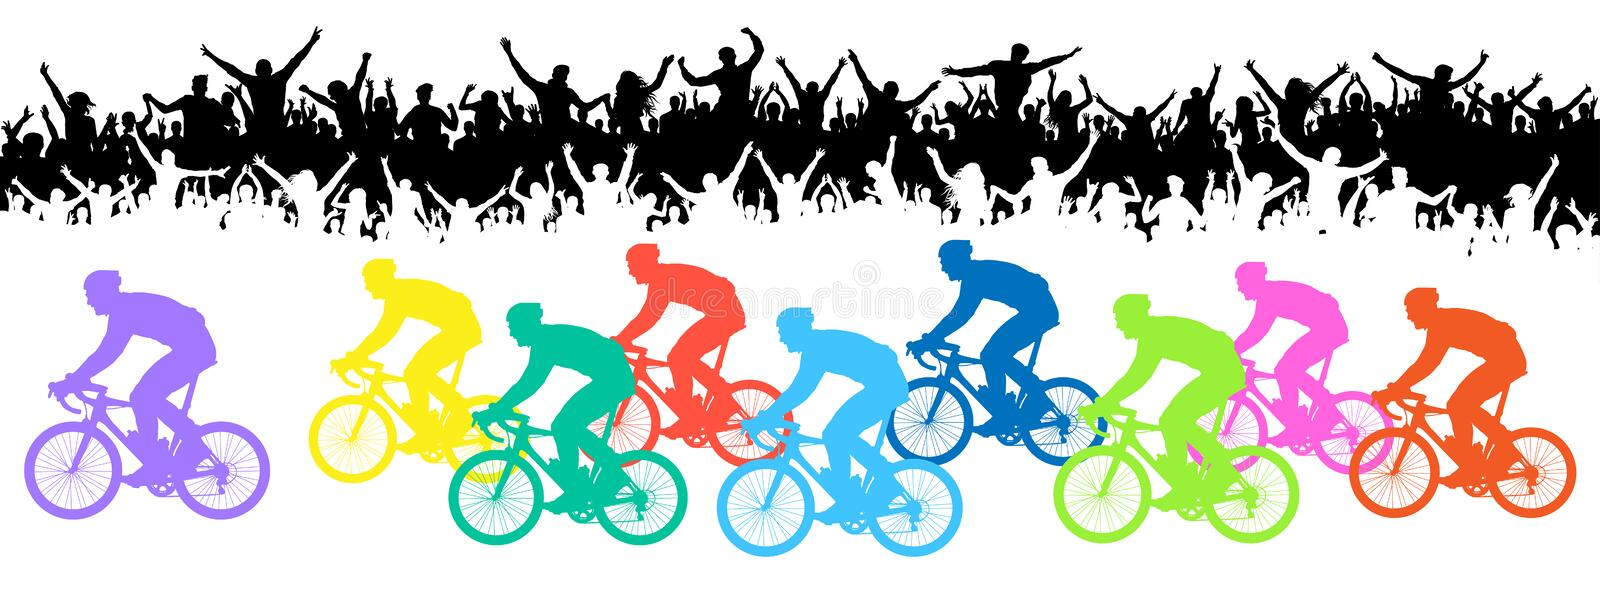 Bicycle race. Crowd of fans, silhouette. Sport event banner. Bicycle race. Crowd of fans, silhouette. Sport event banner vector illustration